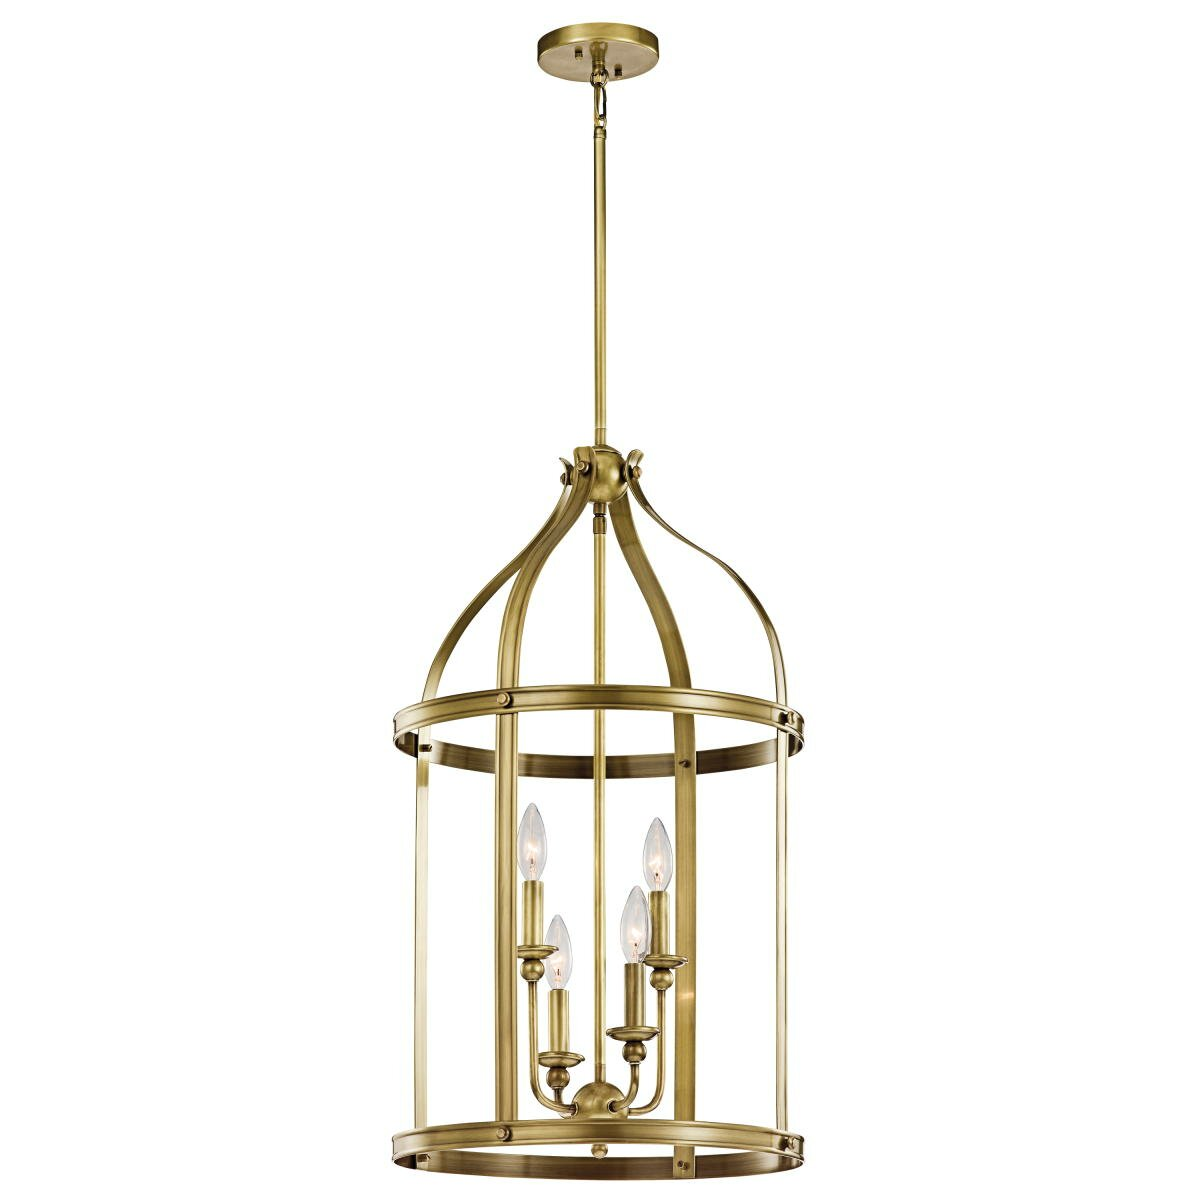 Kichler Foyer Chandelier : Kichler steeplechase light foyer pendant reviews wayfair